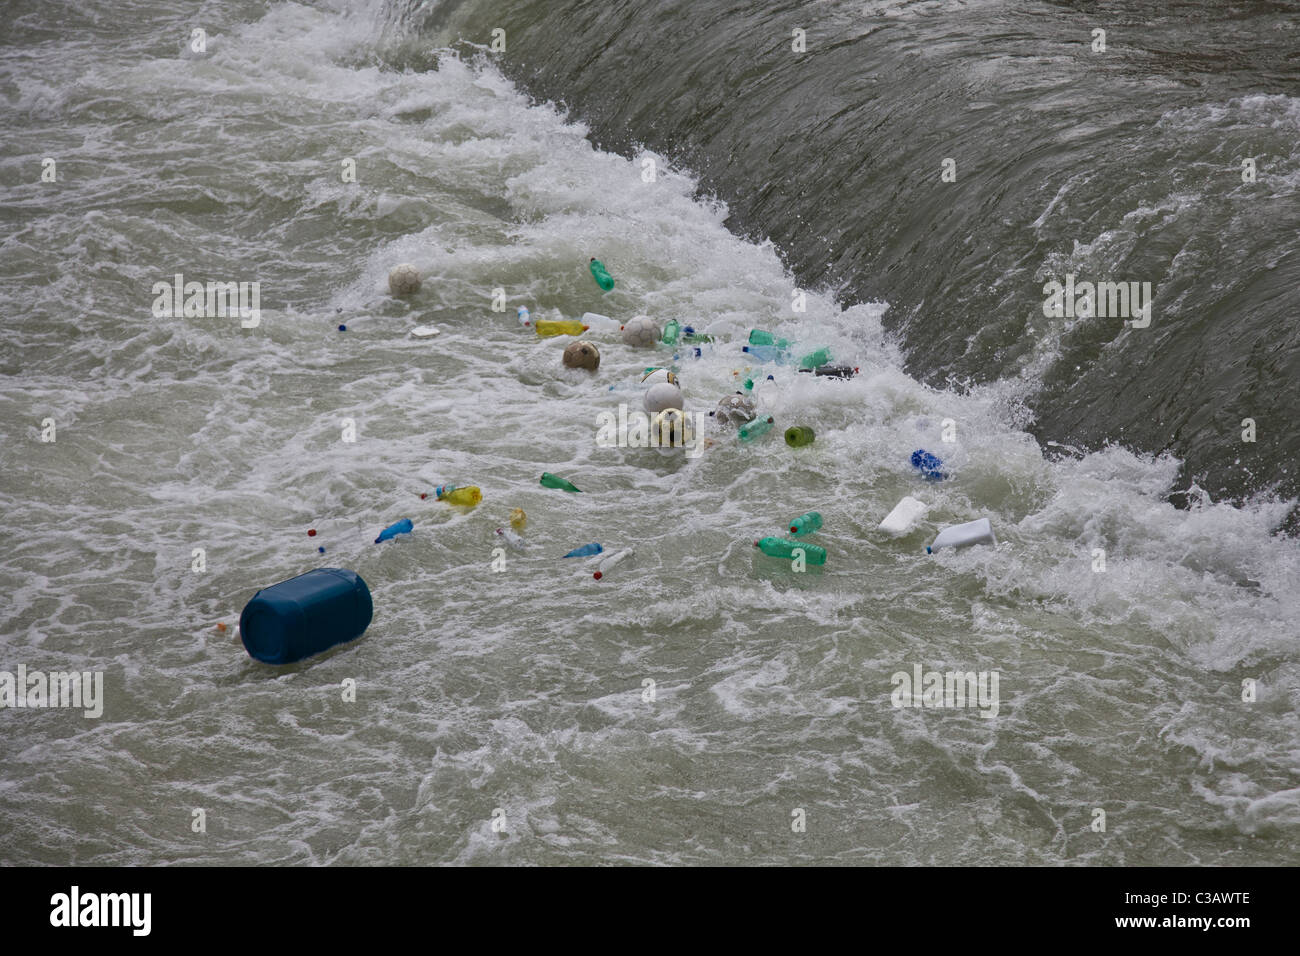 Plastic debris pollution in the rapids of the Tiber river in Rome. Detriti di plastica in una rapida del fiume Tevere - Stock Image